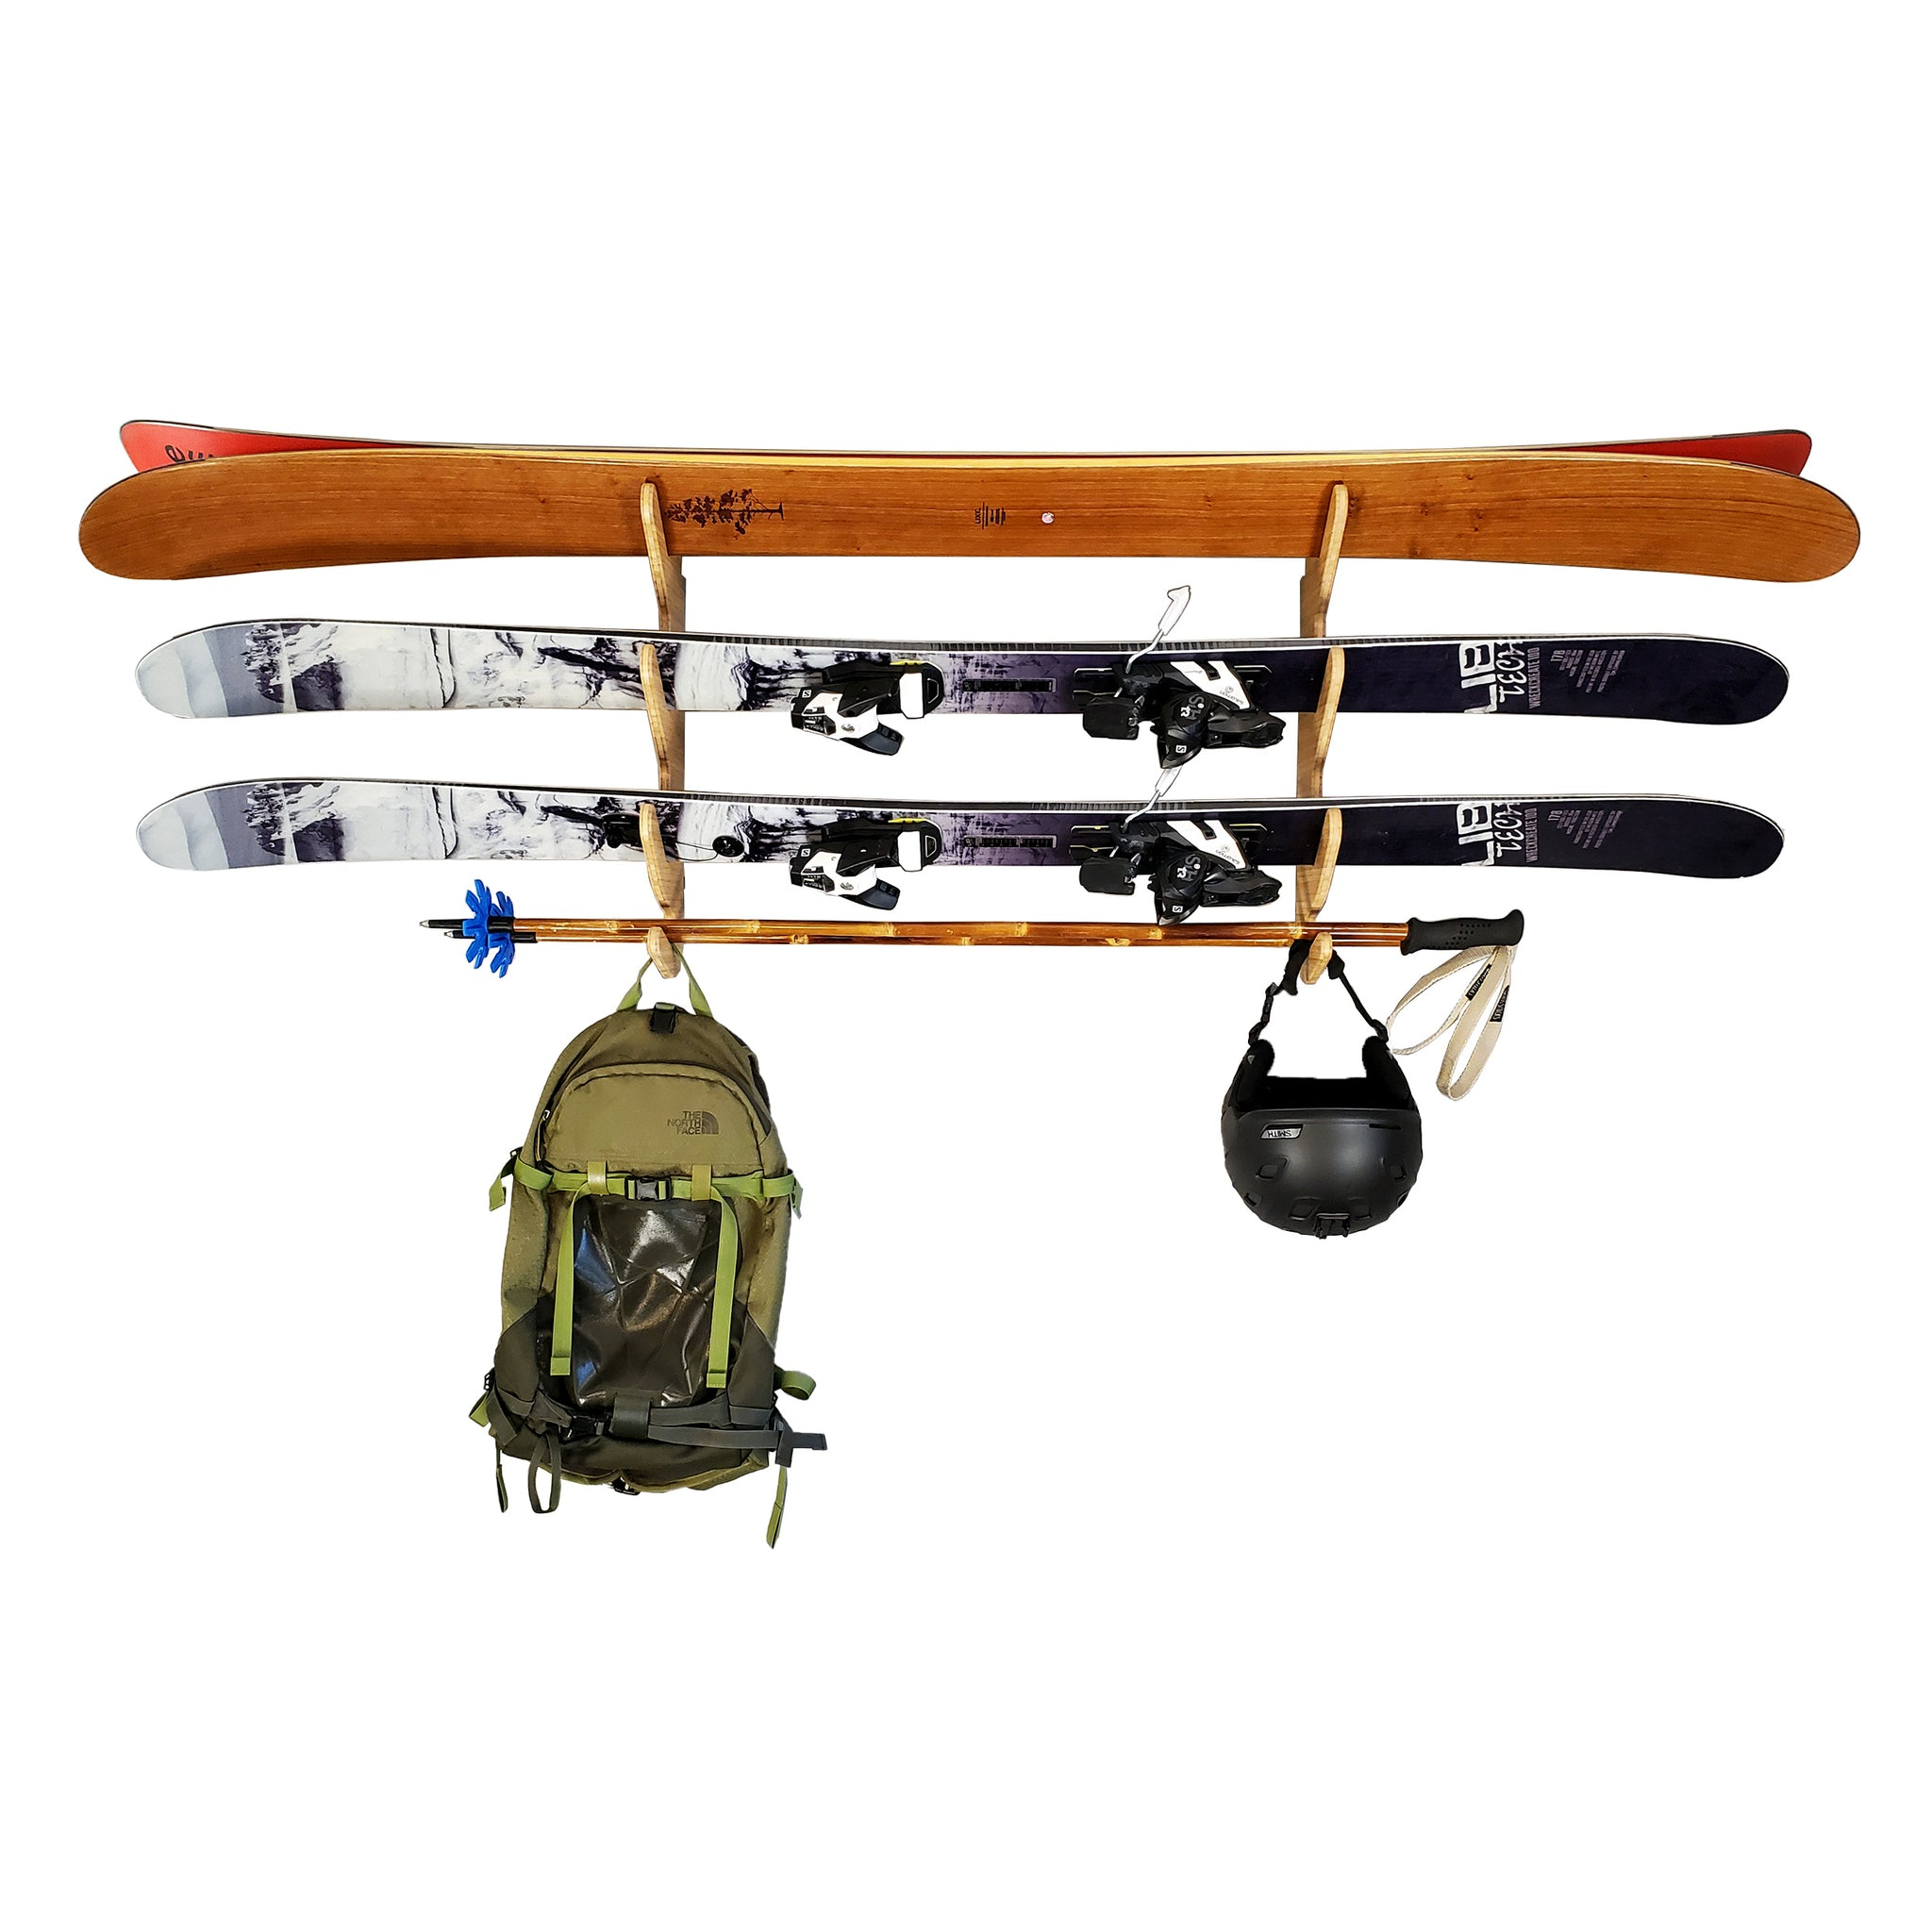 Ski Rack for 3 Skis - Grassracks Wall Ski Storage